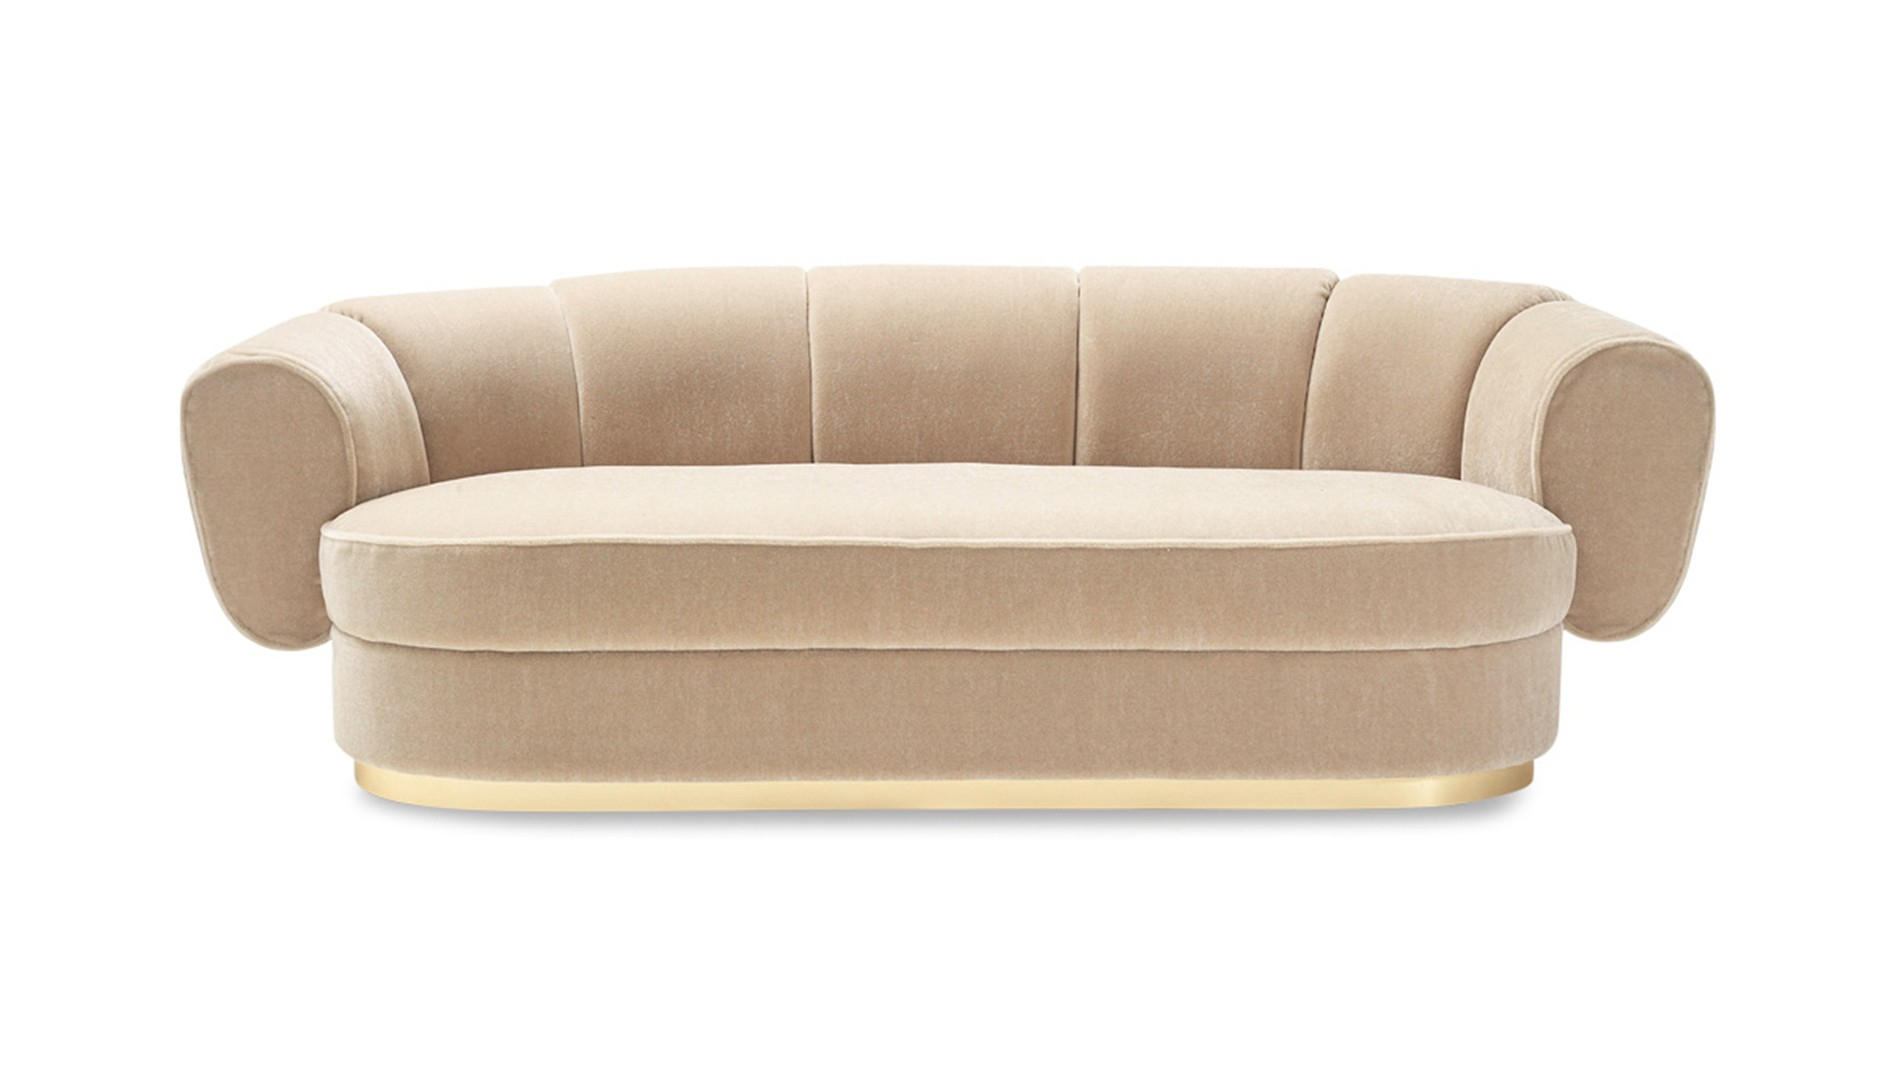 Marioni – Grace Sofa – Buy Online At Luxdeco Intended For Grace Sofa Chairs (View 8 of 25)